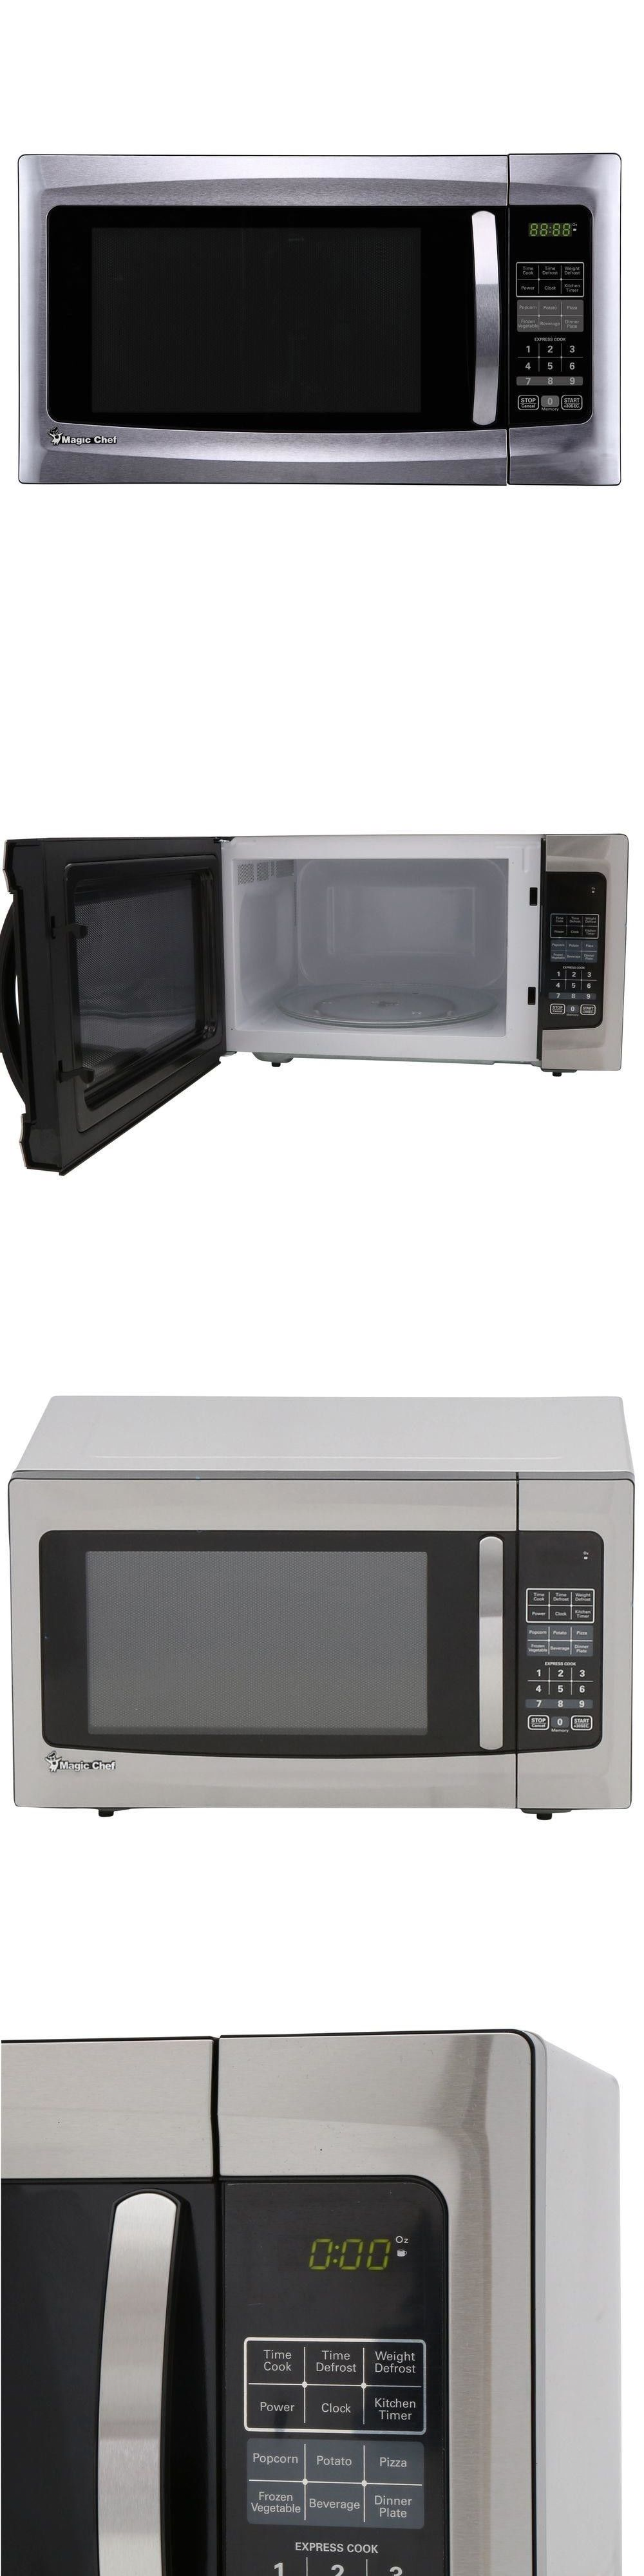 Microwave Ovens 150140 Magic Chef Countertop 1 6 Cu Ft 1100 Watts Stainless Steel Oven It Now Only 128 5 On Ebay